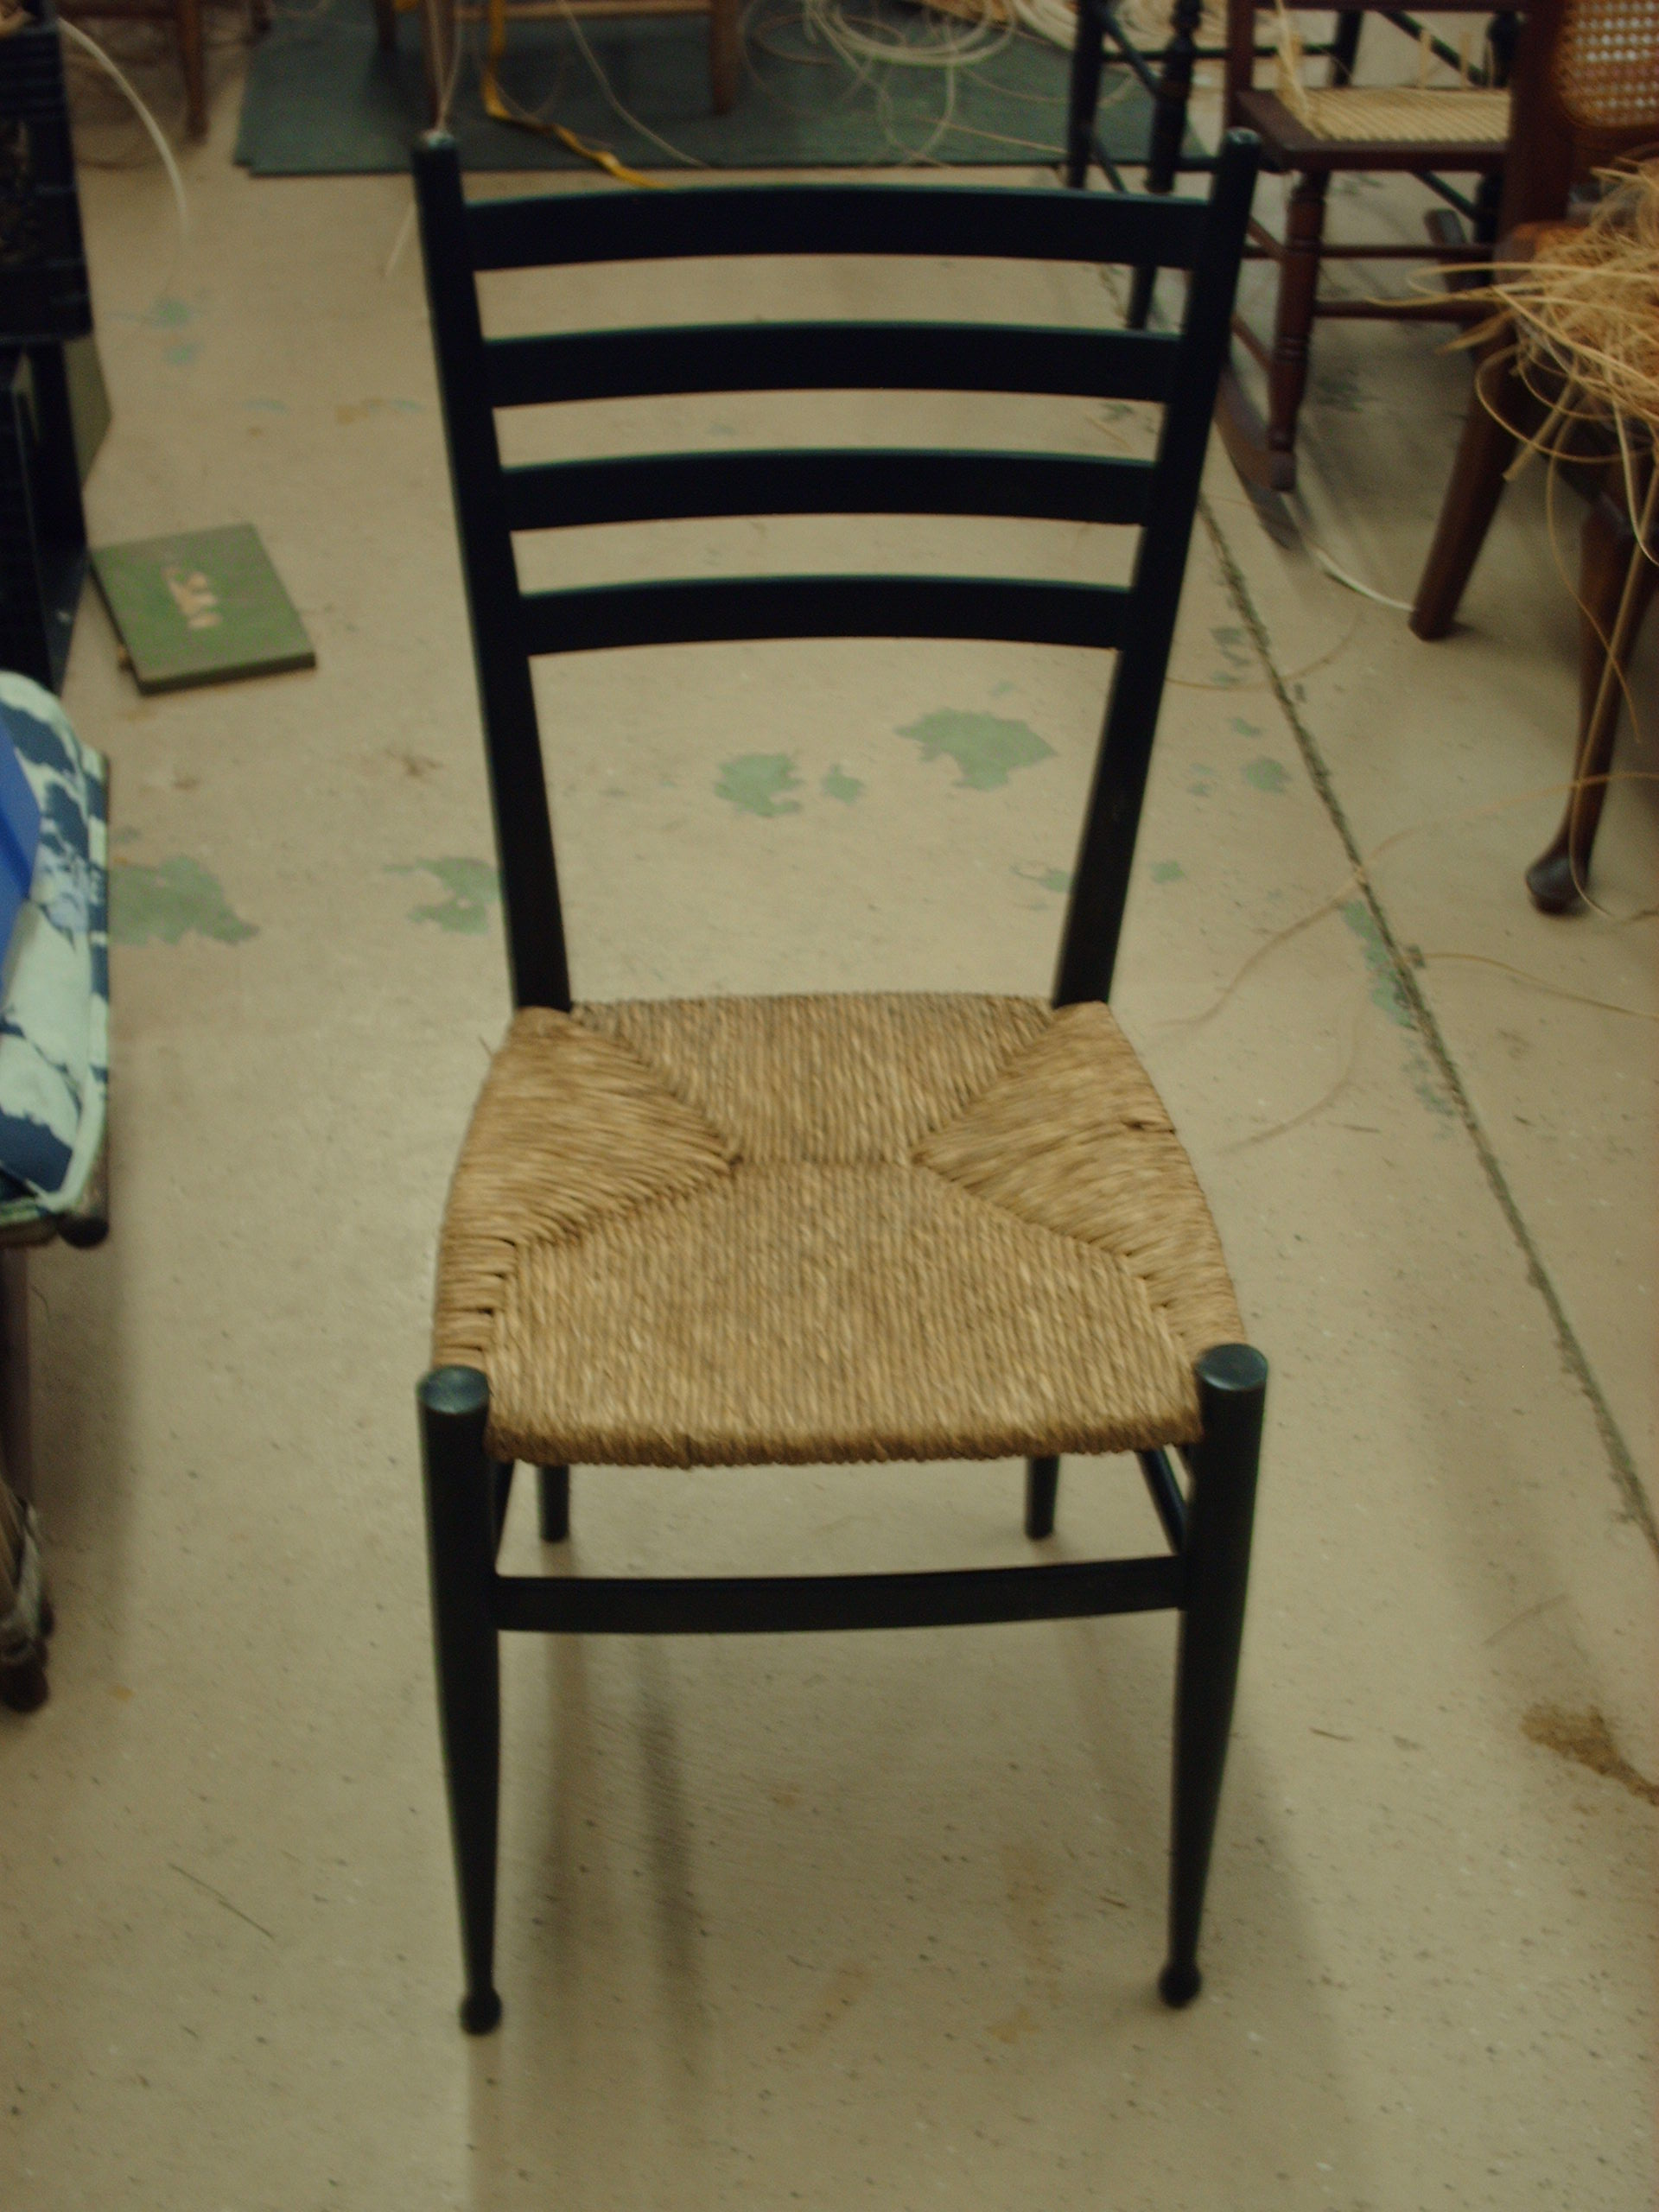 I have noticed during this depressed economy that more old chairs are coming out of basements attics and barns to regain their rightful places in the home ... & Old Chairs Regain New Life | Heritage Basket Studio